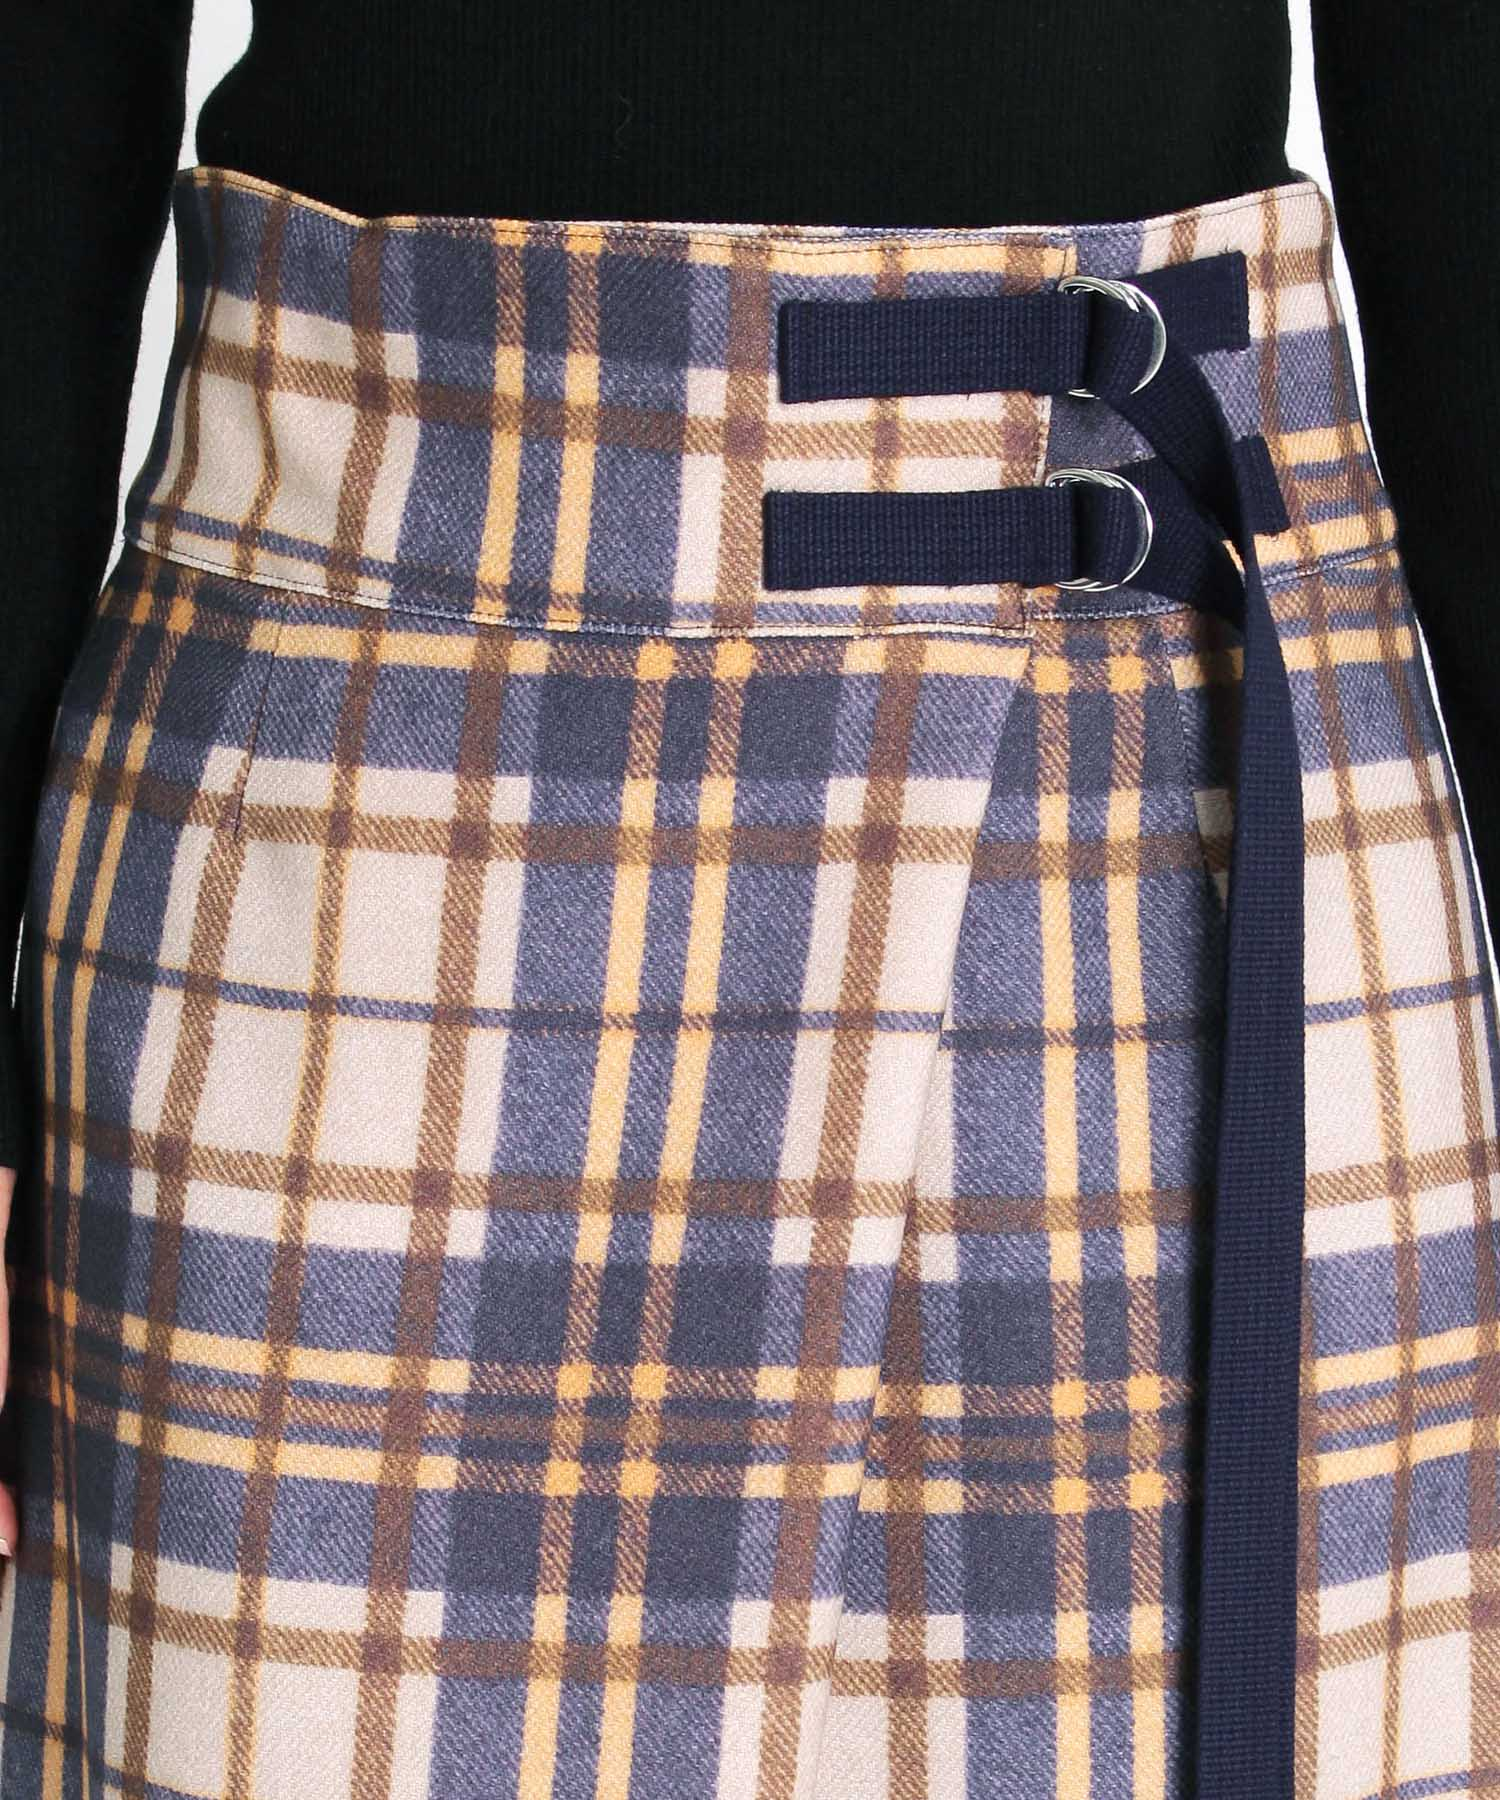 <B7>color check belt skirt